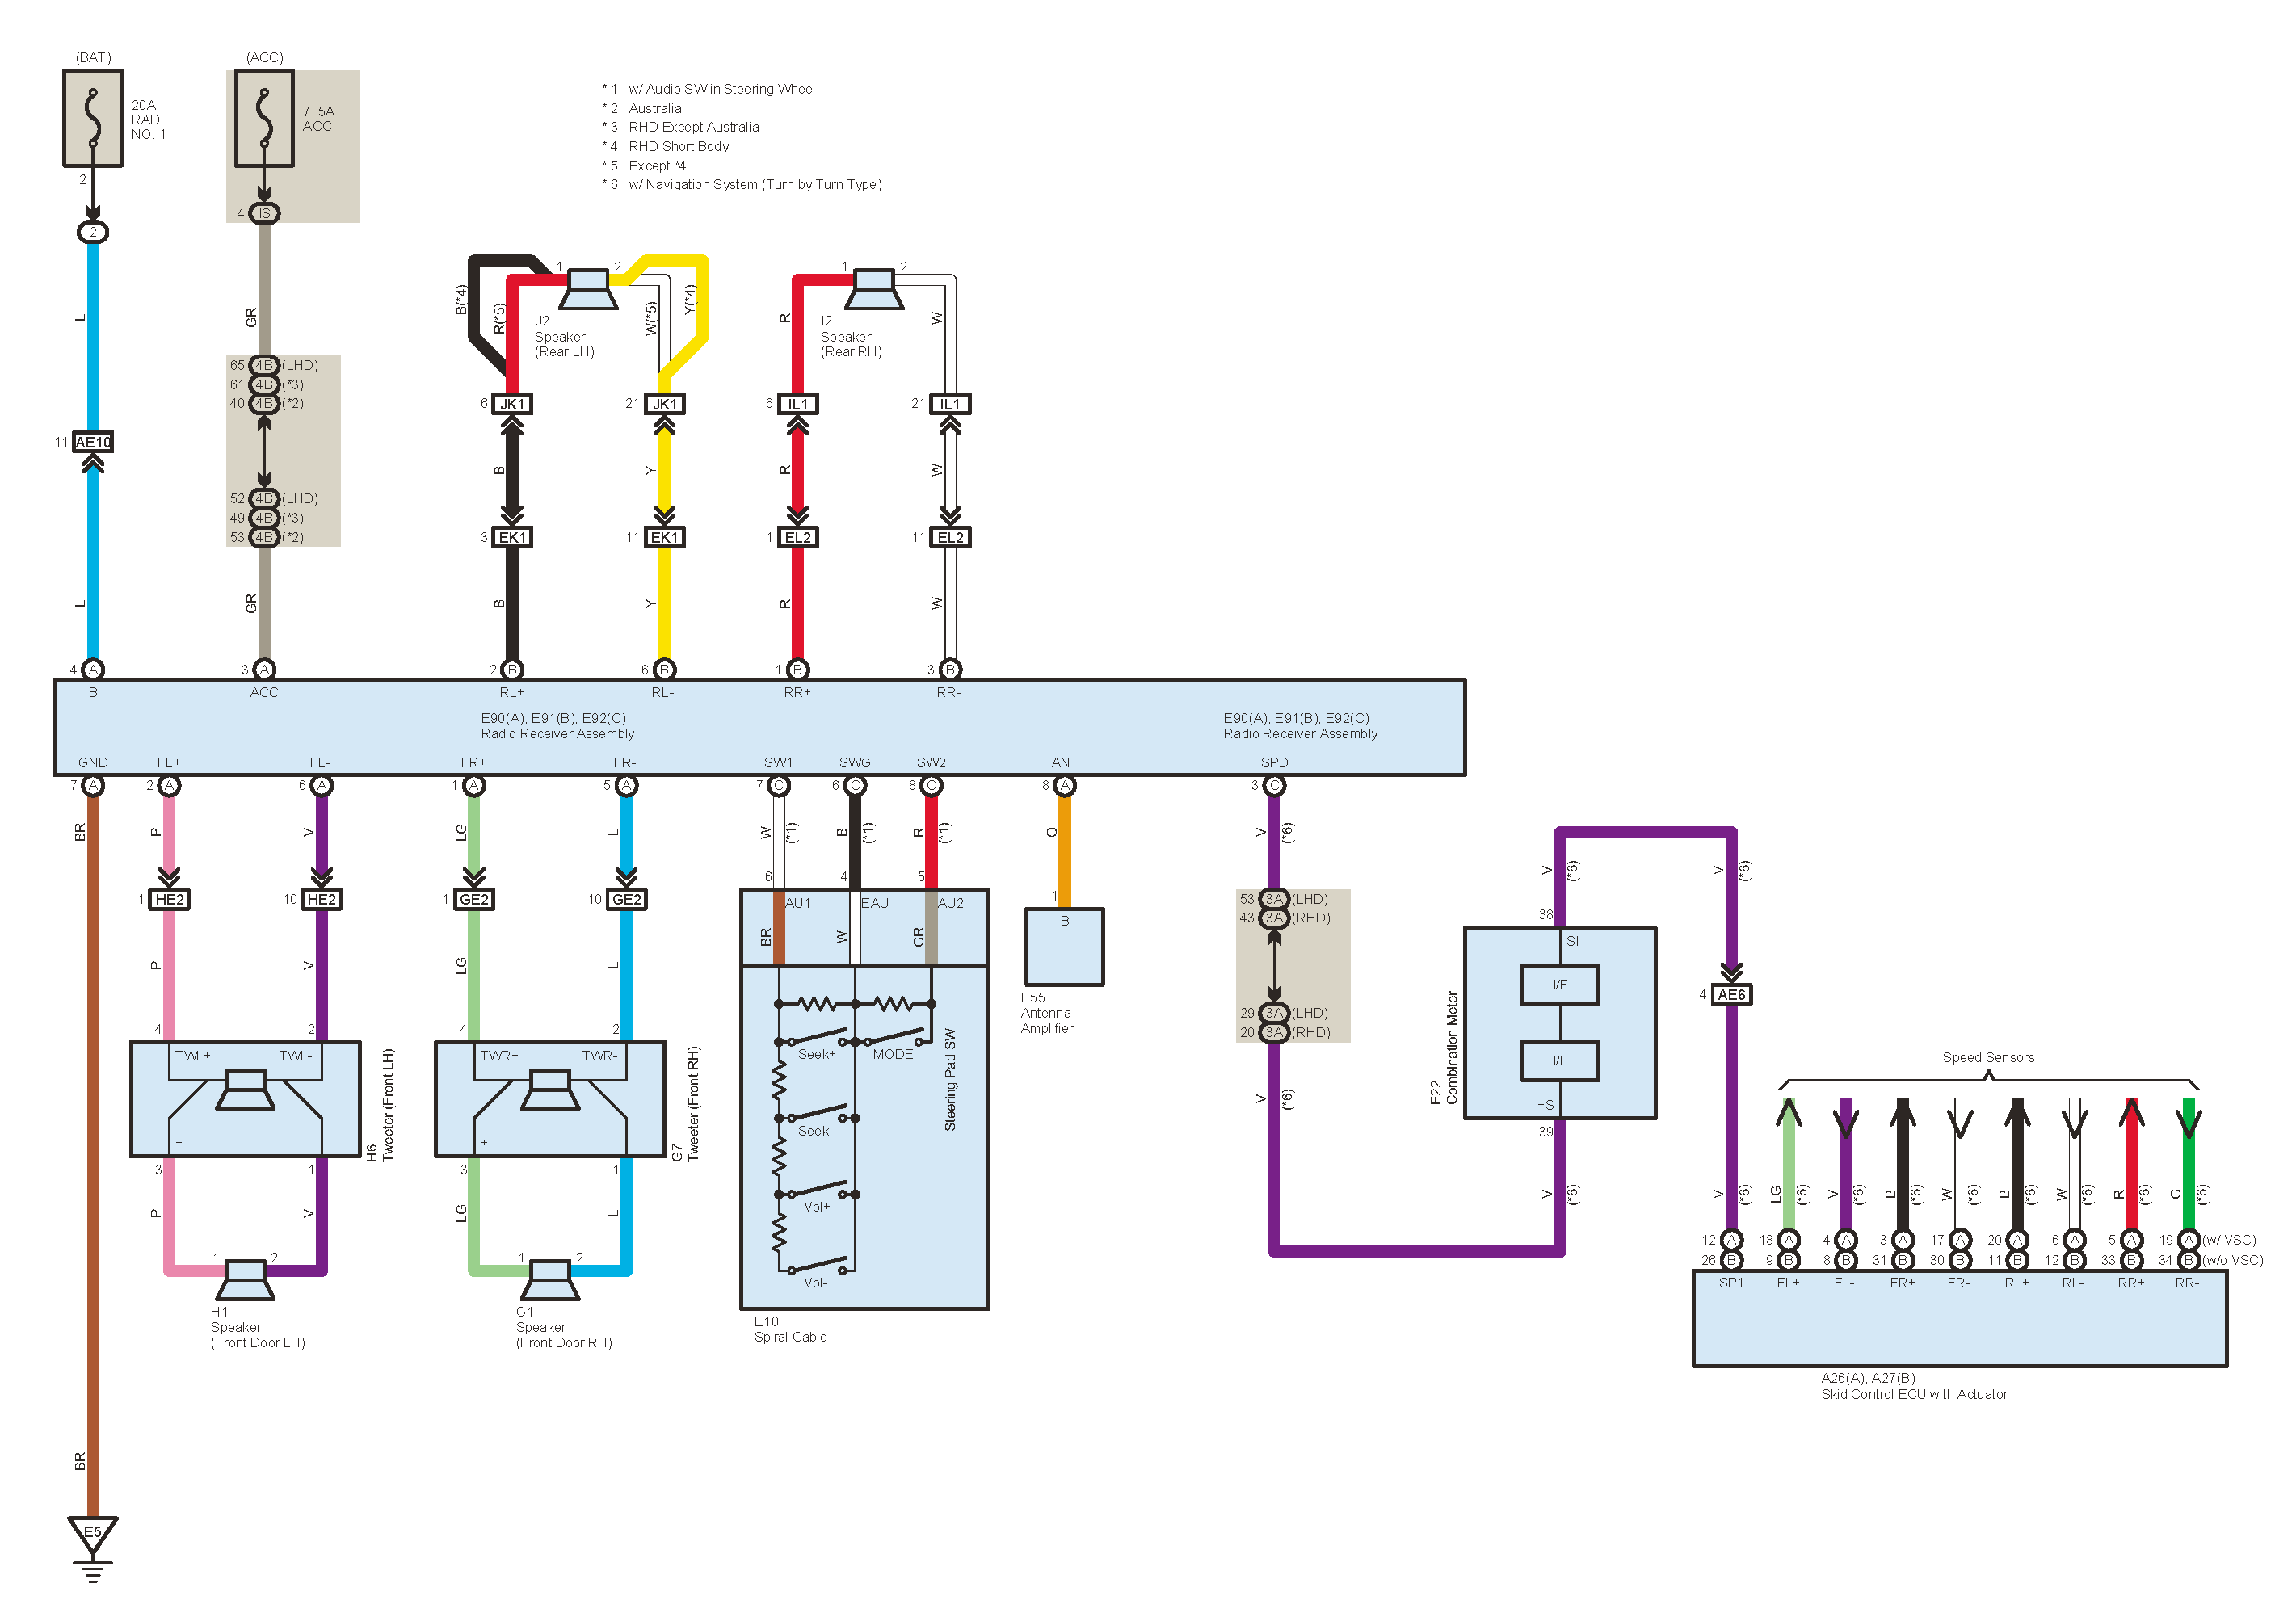 Toyota Venza Radio Wiring Harness Archive Of Automotive 2013 Diagram 2007 Corolla Schemes Rh Cabanaselgolfo Com 2014